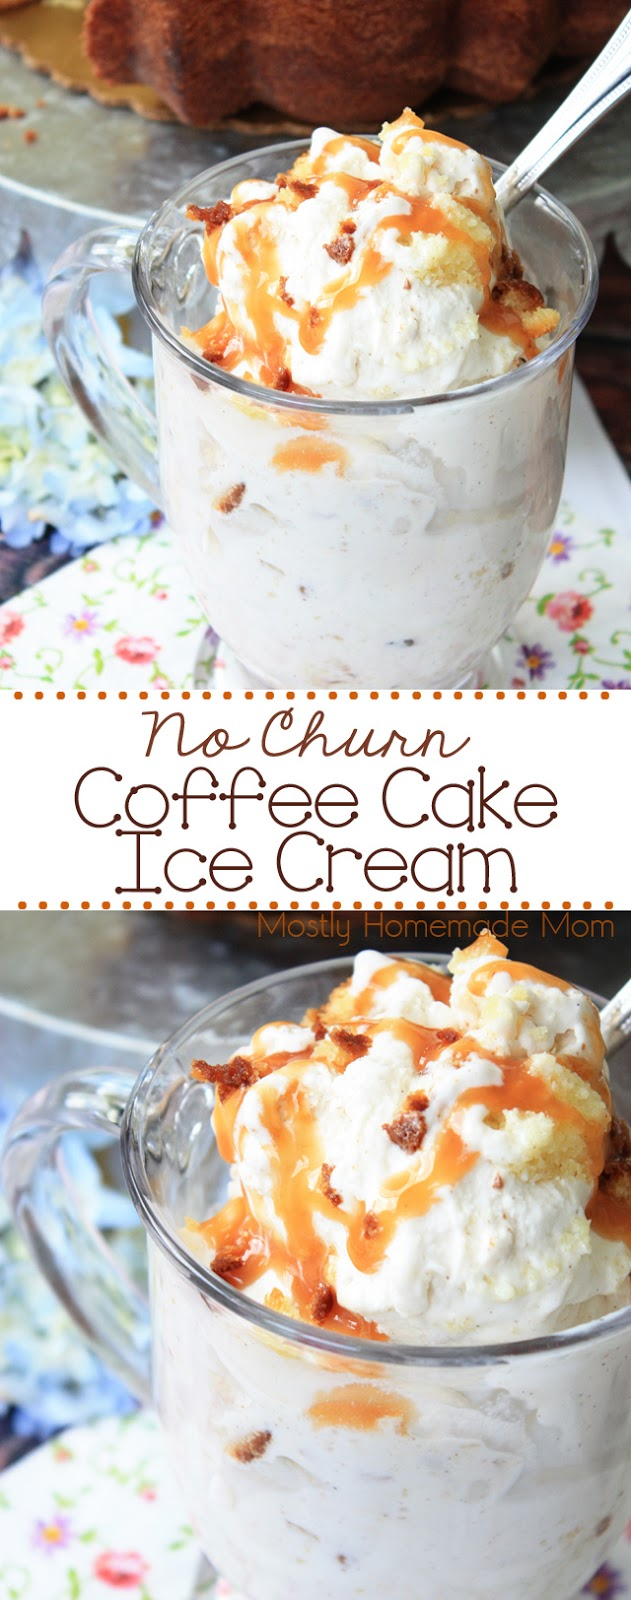 No Churn Coffee Cake Ice Cream recipe